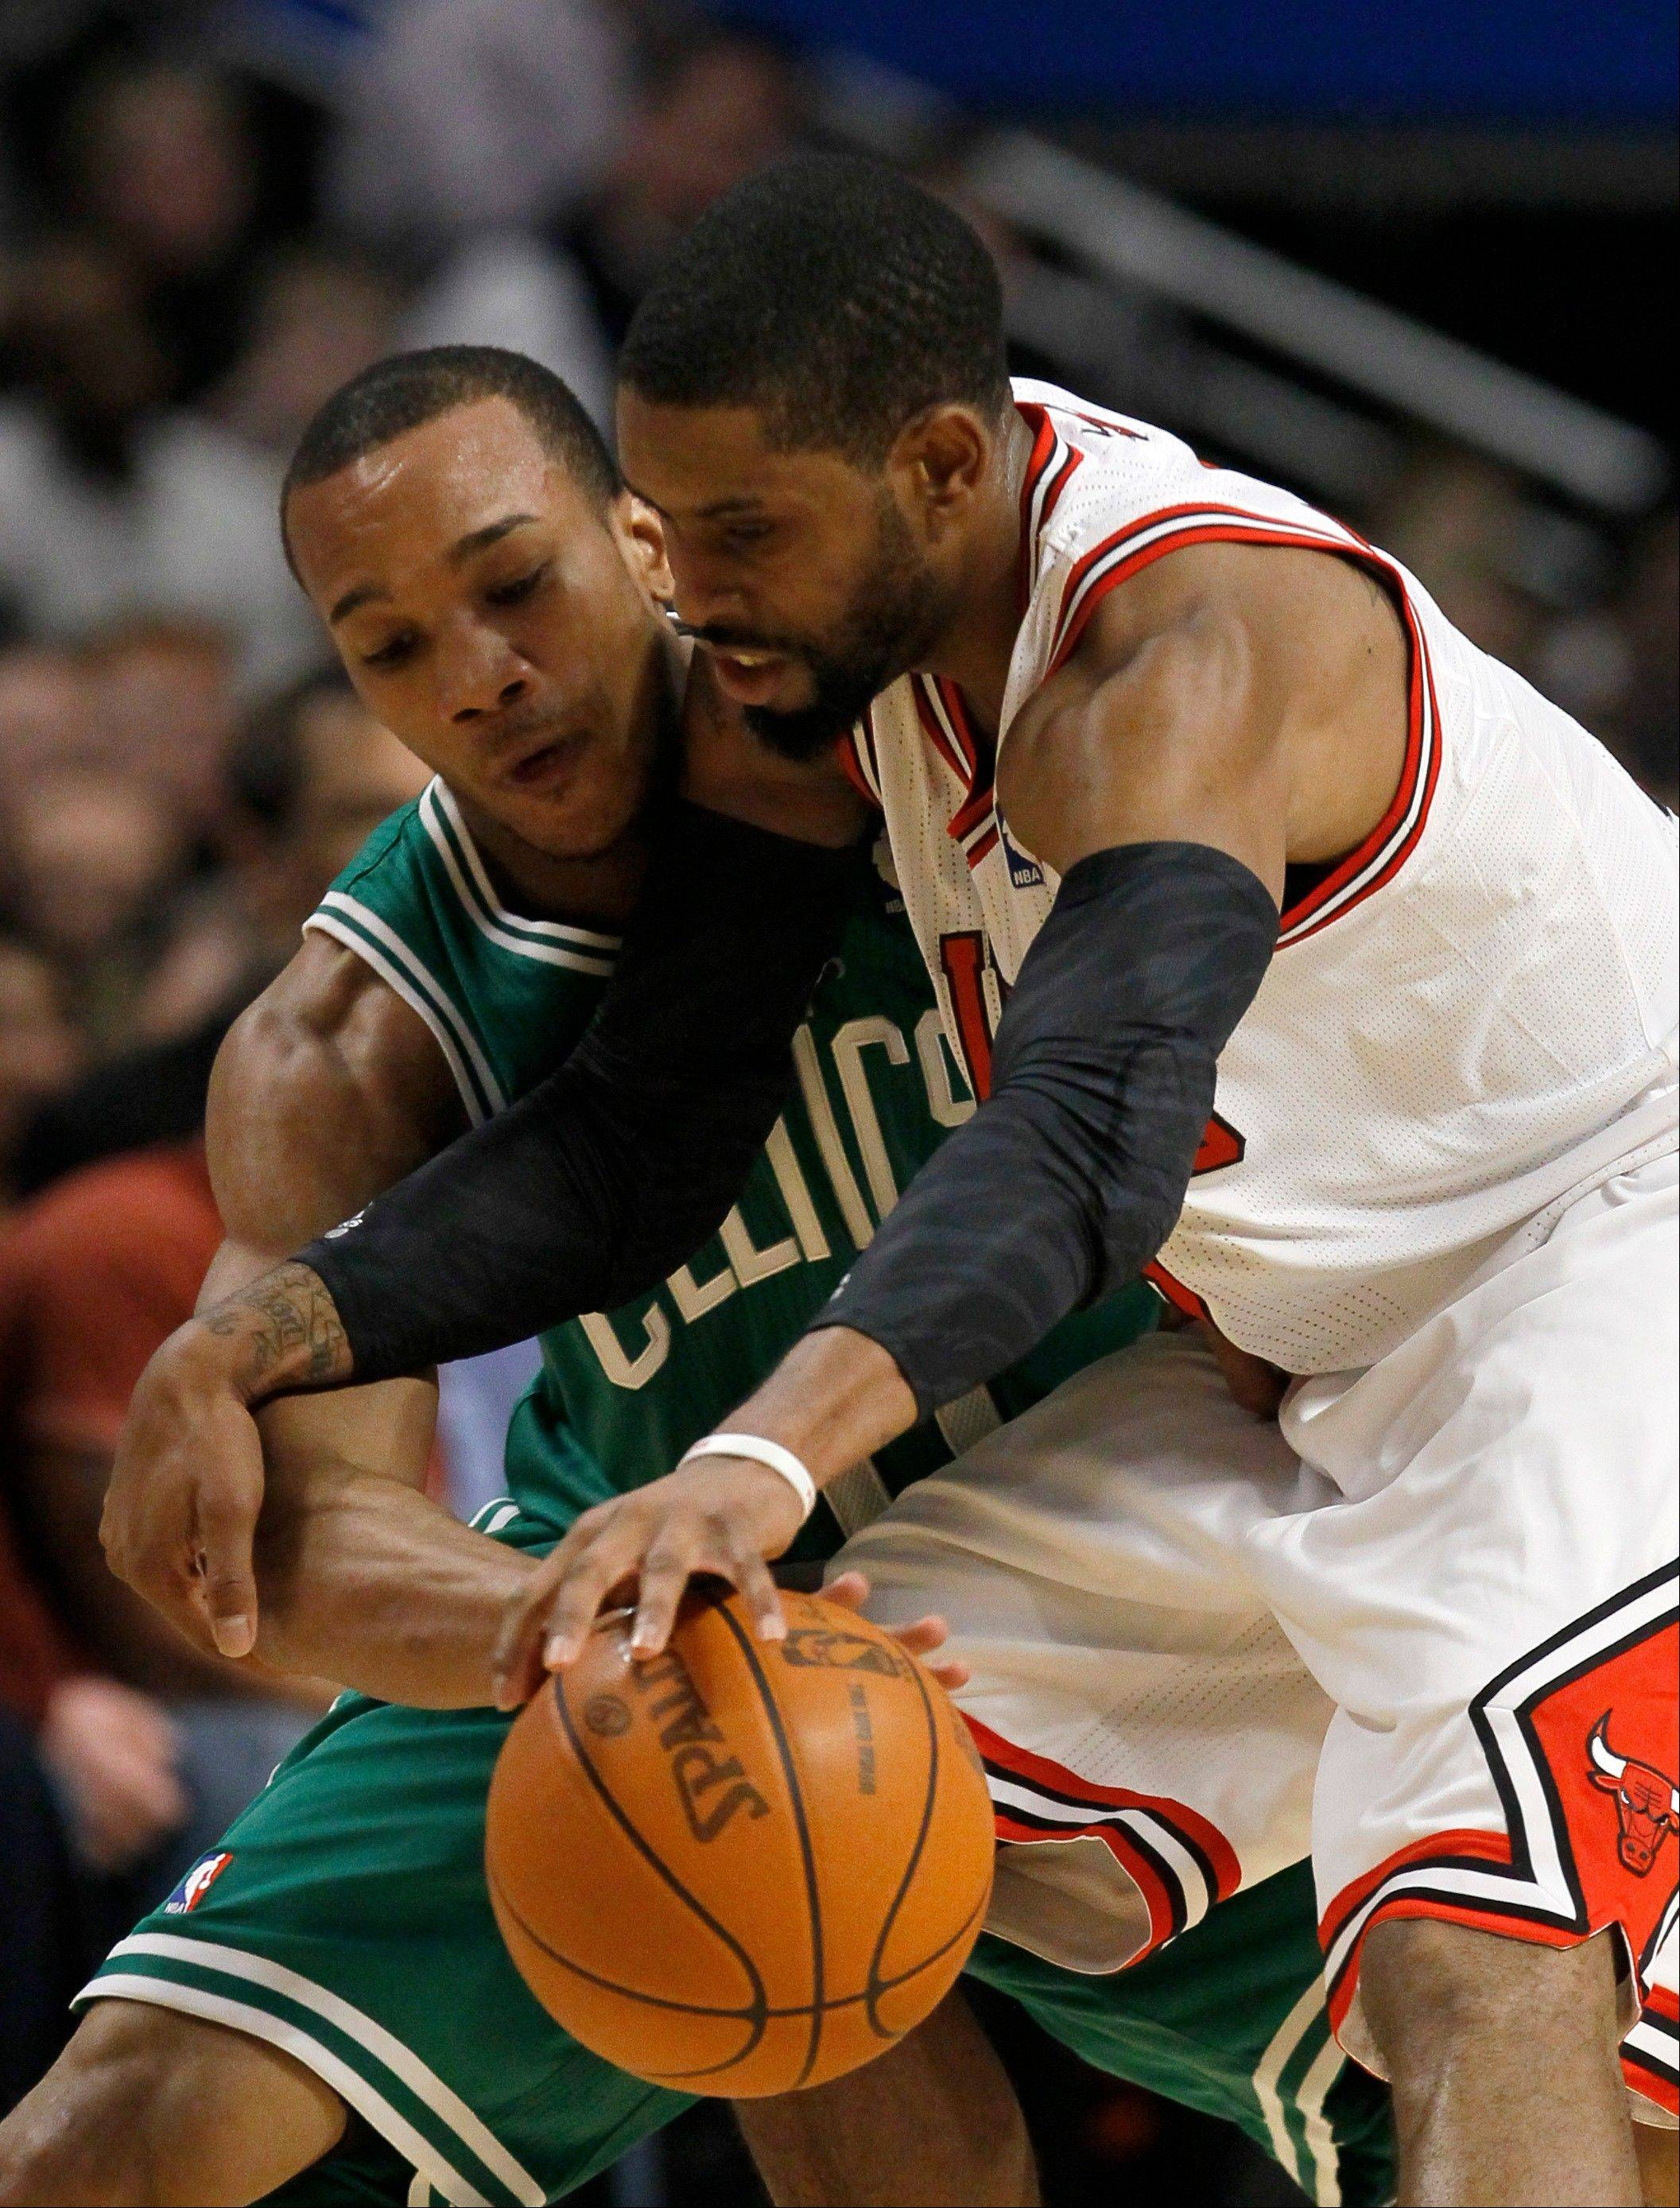 Boston Celtics shooting guard Avery Bradley, left, tries to steal the ball from Bulls point guard C.J. Watson Thursday during the first half.